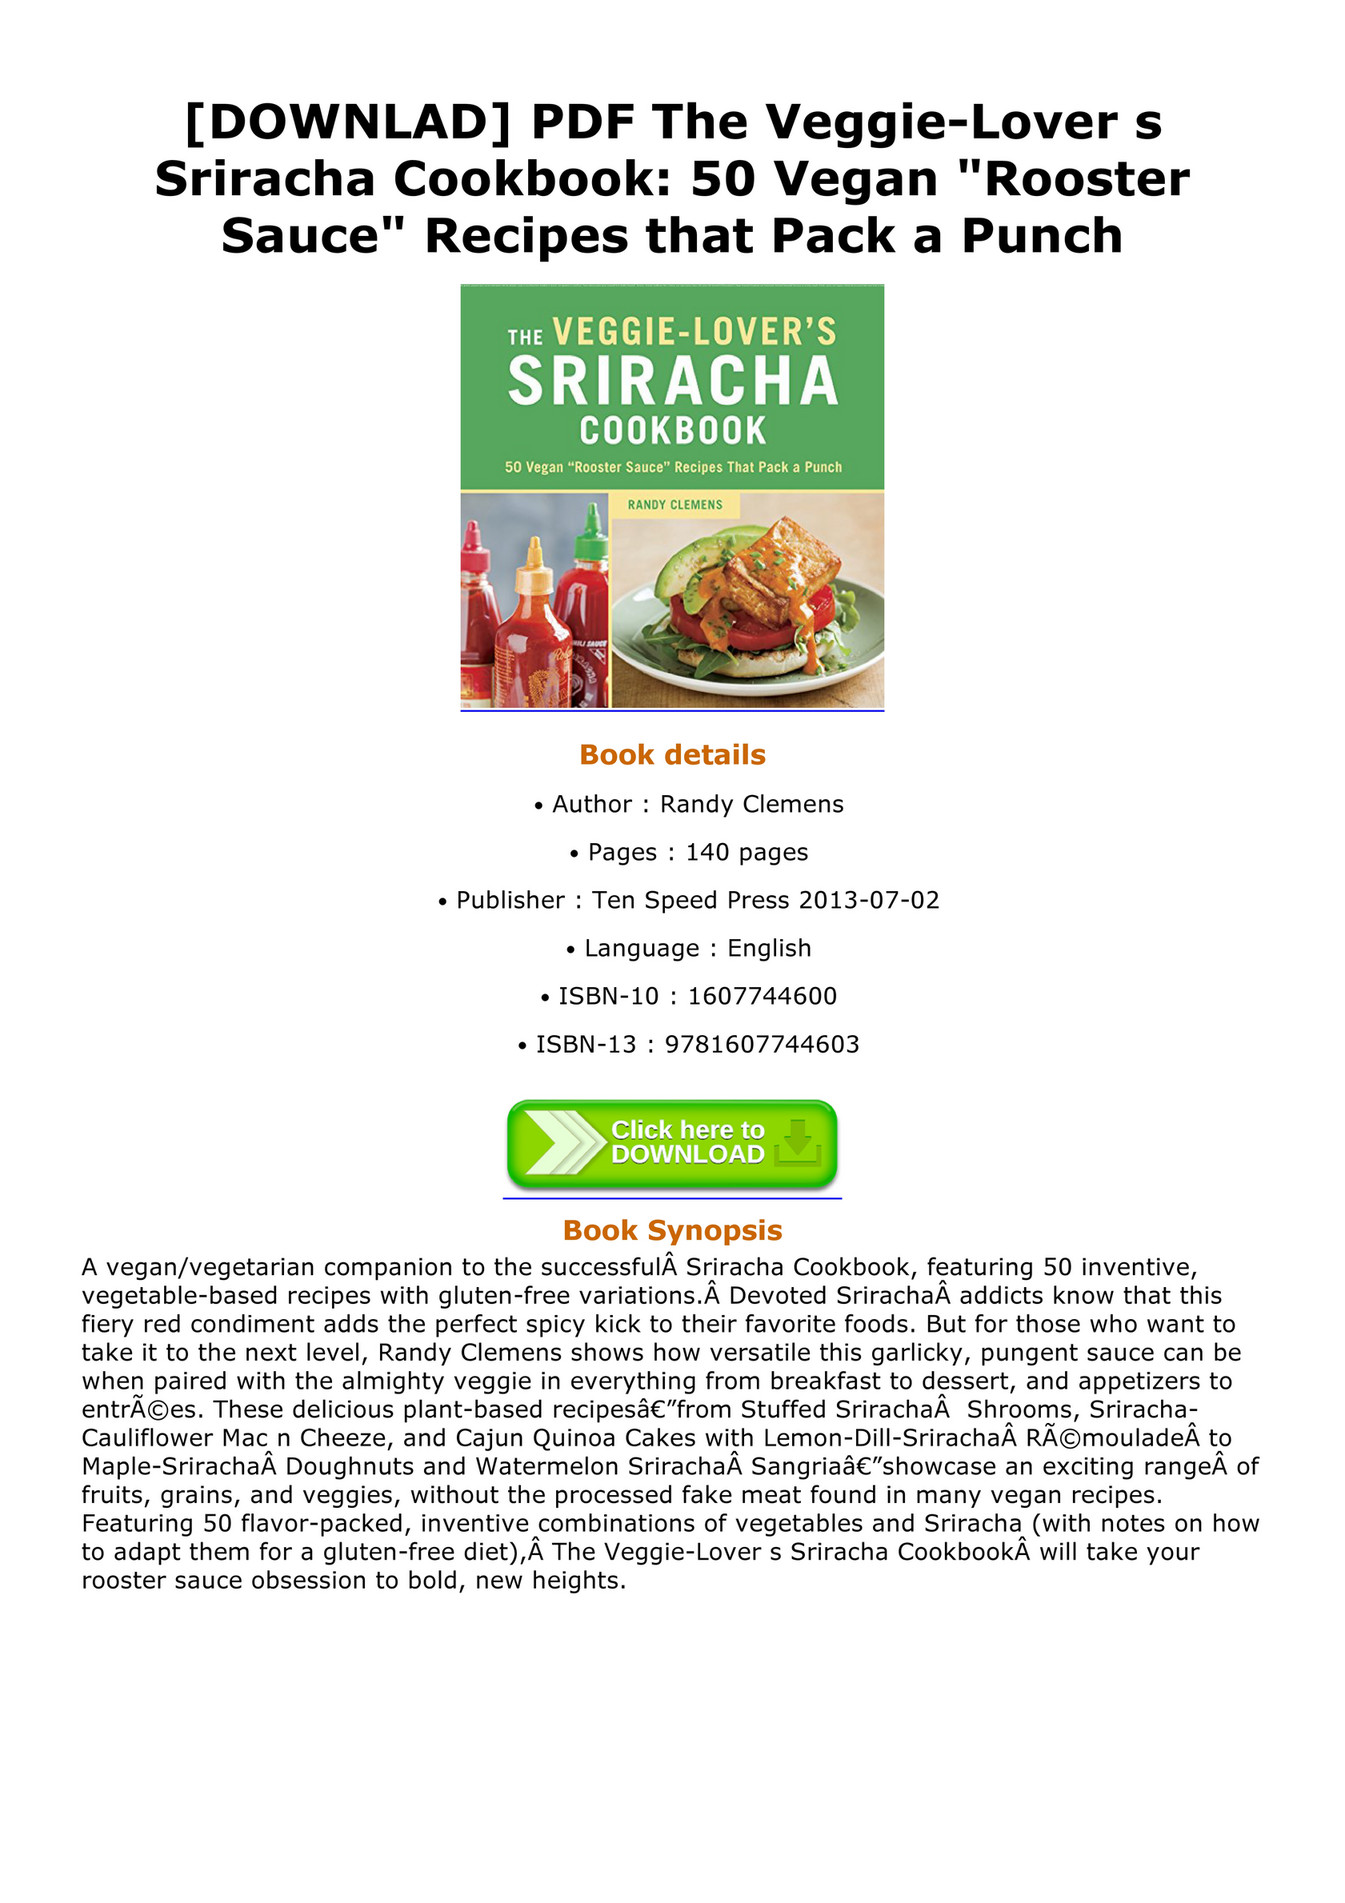 The Veggie-Lovers Sriracha Cookbook 50 Vegan Rooster Sauce Recipes that Pack a Punch